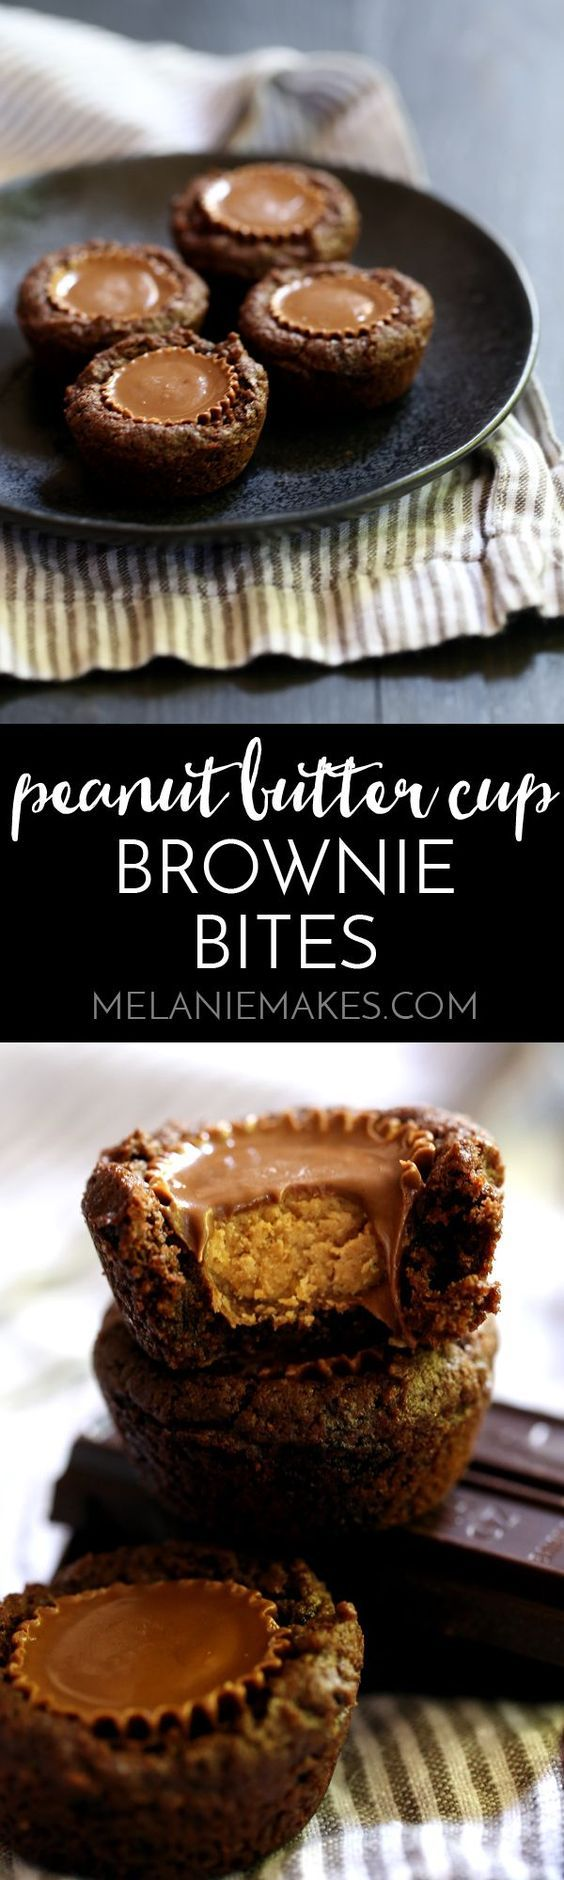 25+ best ideas about Yummy spoonfuls on Pinterest | Spooning ...